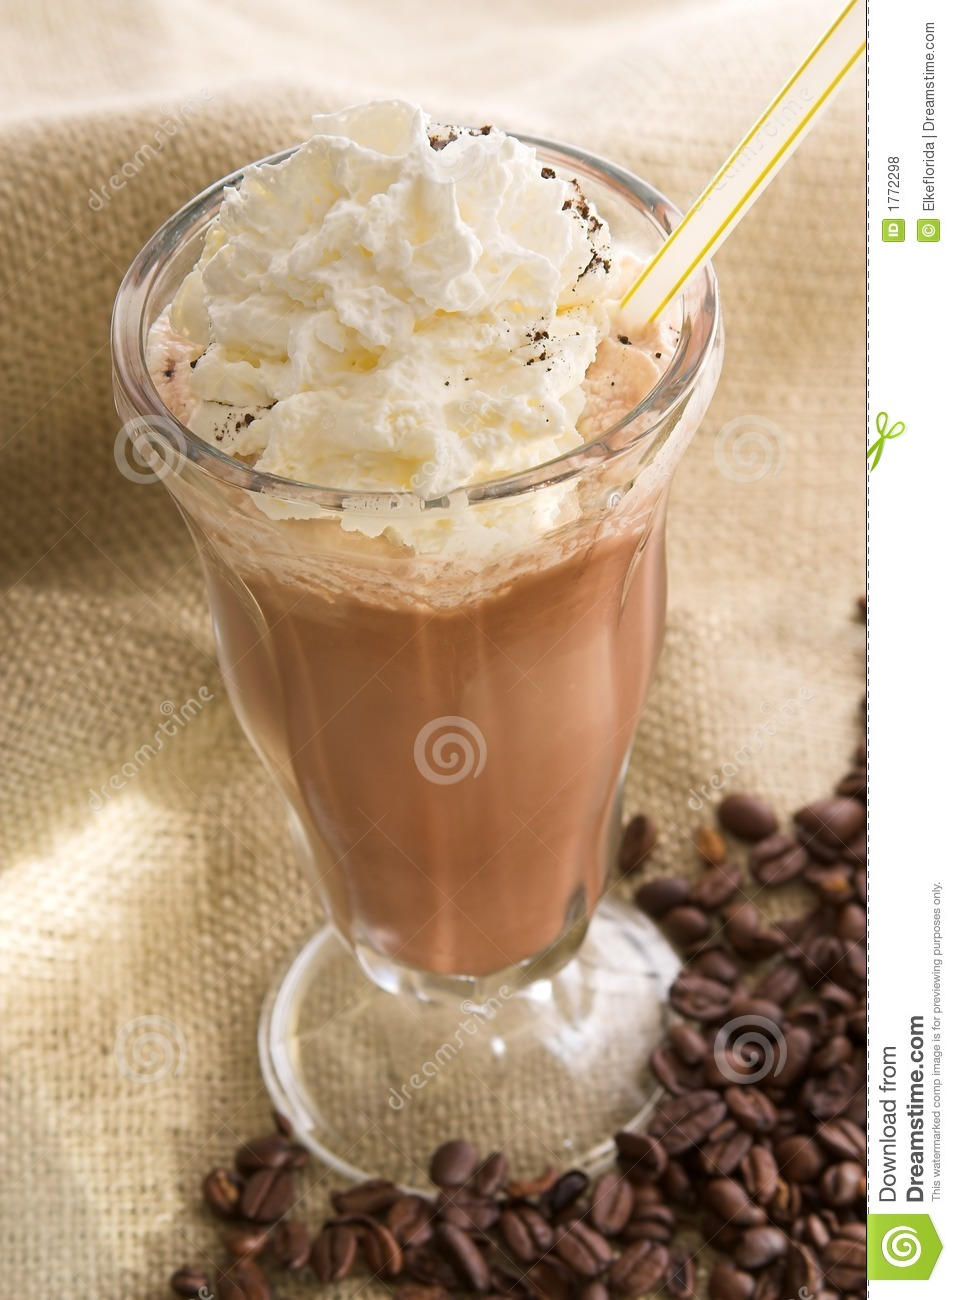 Iced coffee latte stock photo. Image of latte, food ...